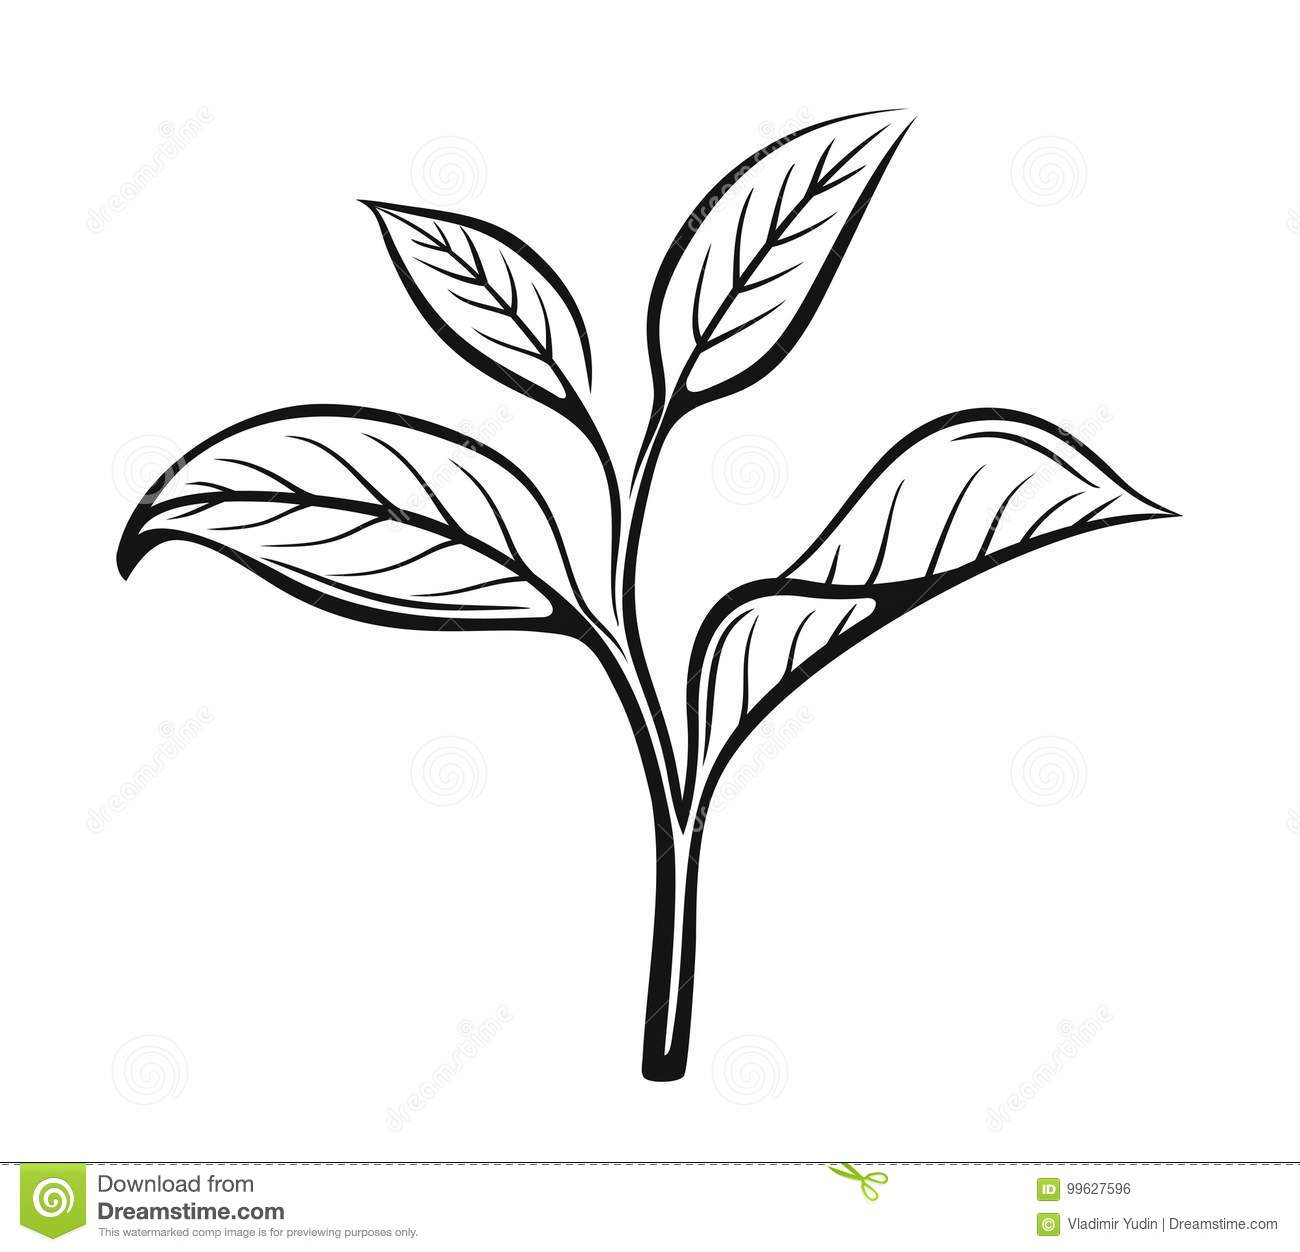 Vector tea leaves stock vector illustration of frame 99627596 download vector tea leaves stock vector illustration of frame 99627596 thecheapjerseys Image collections